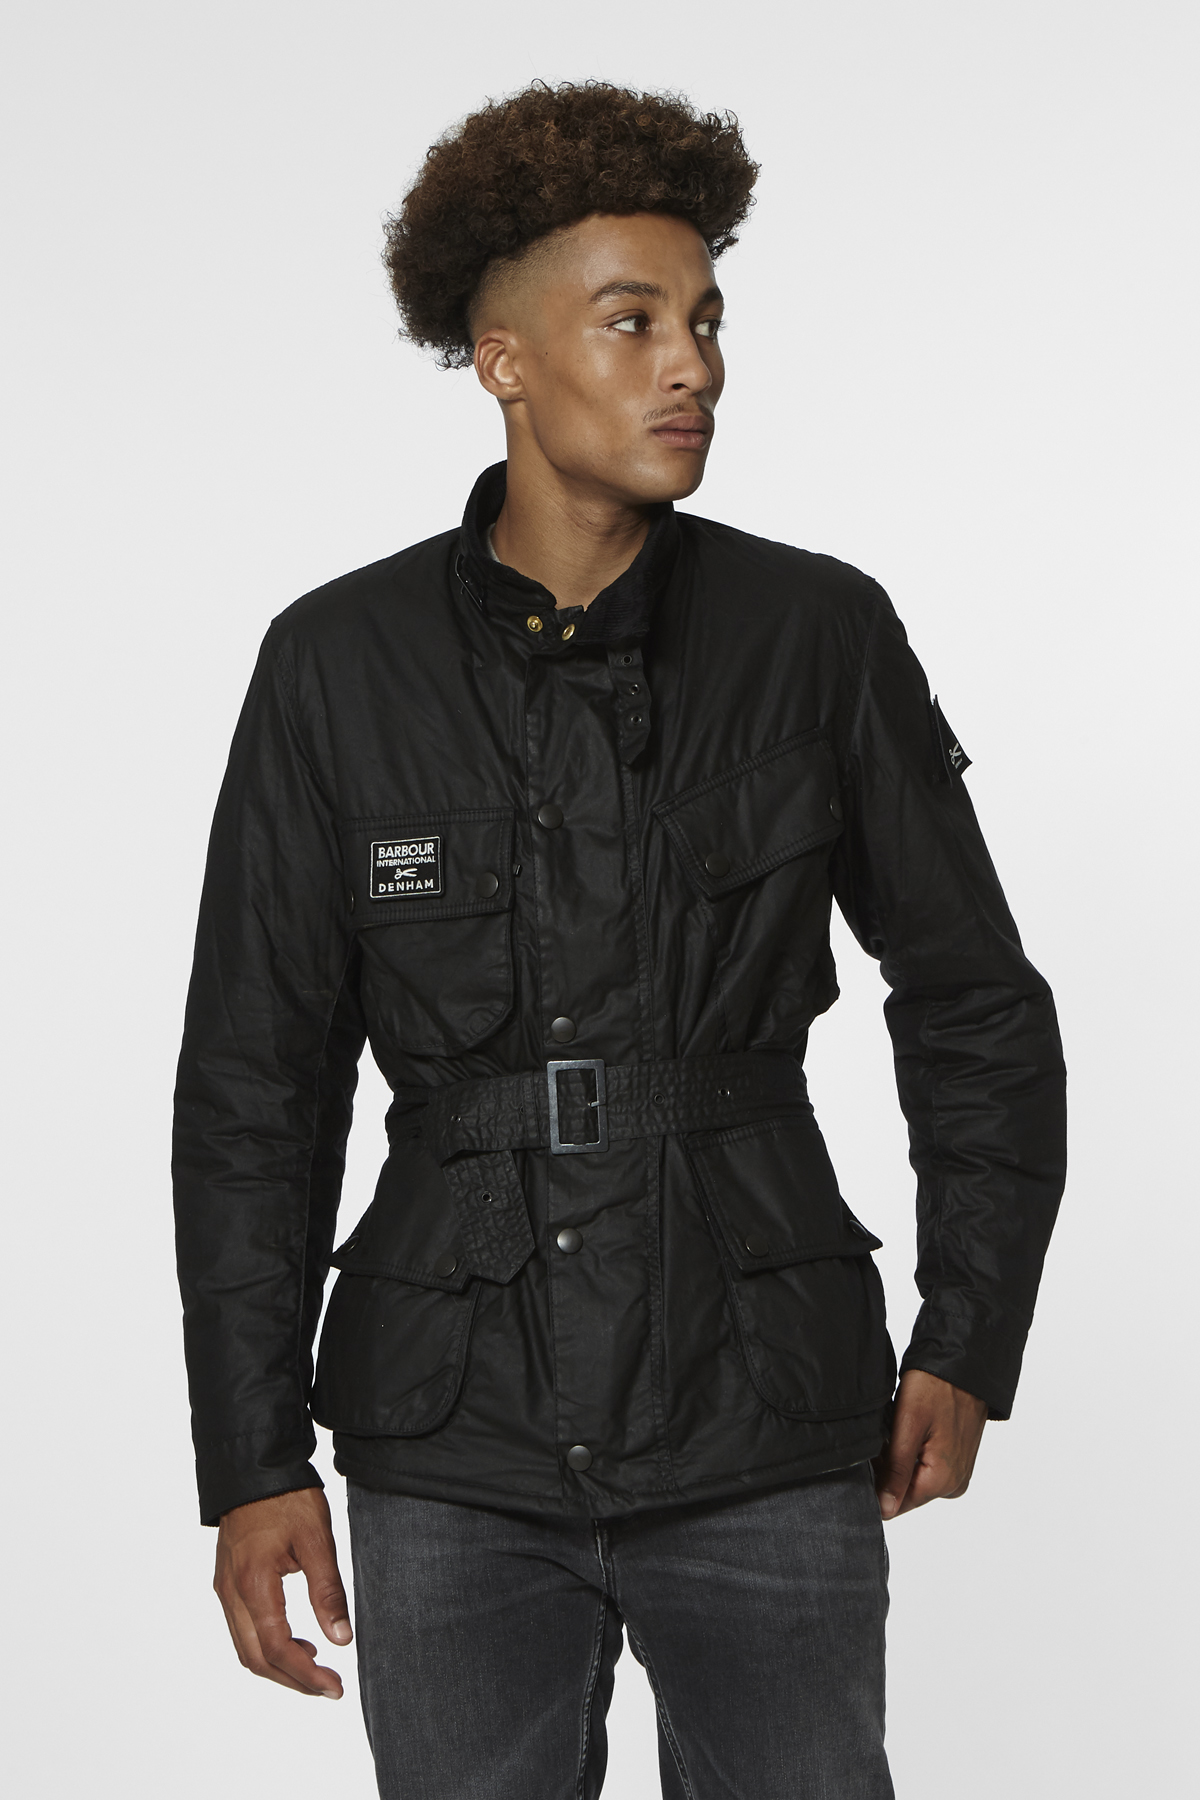 Barbour limited edition acorn wax jacket my country city style.